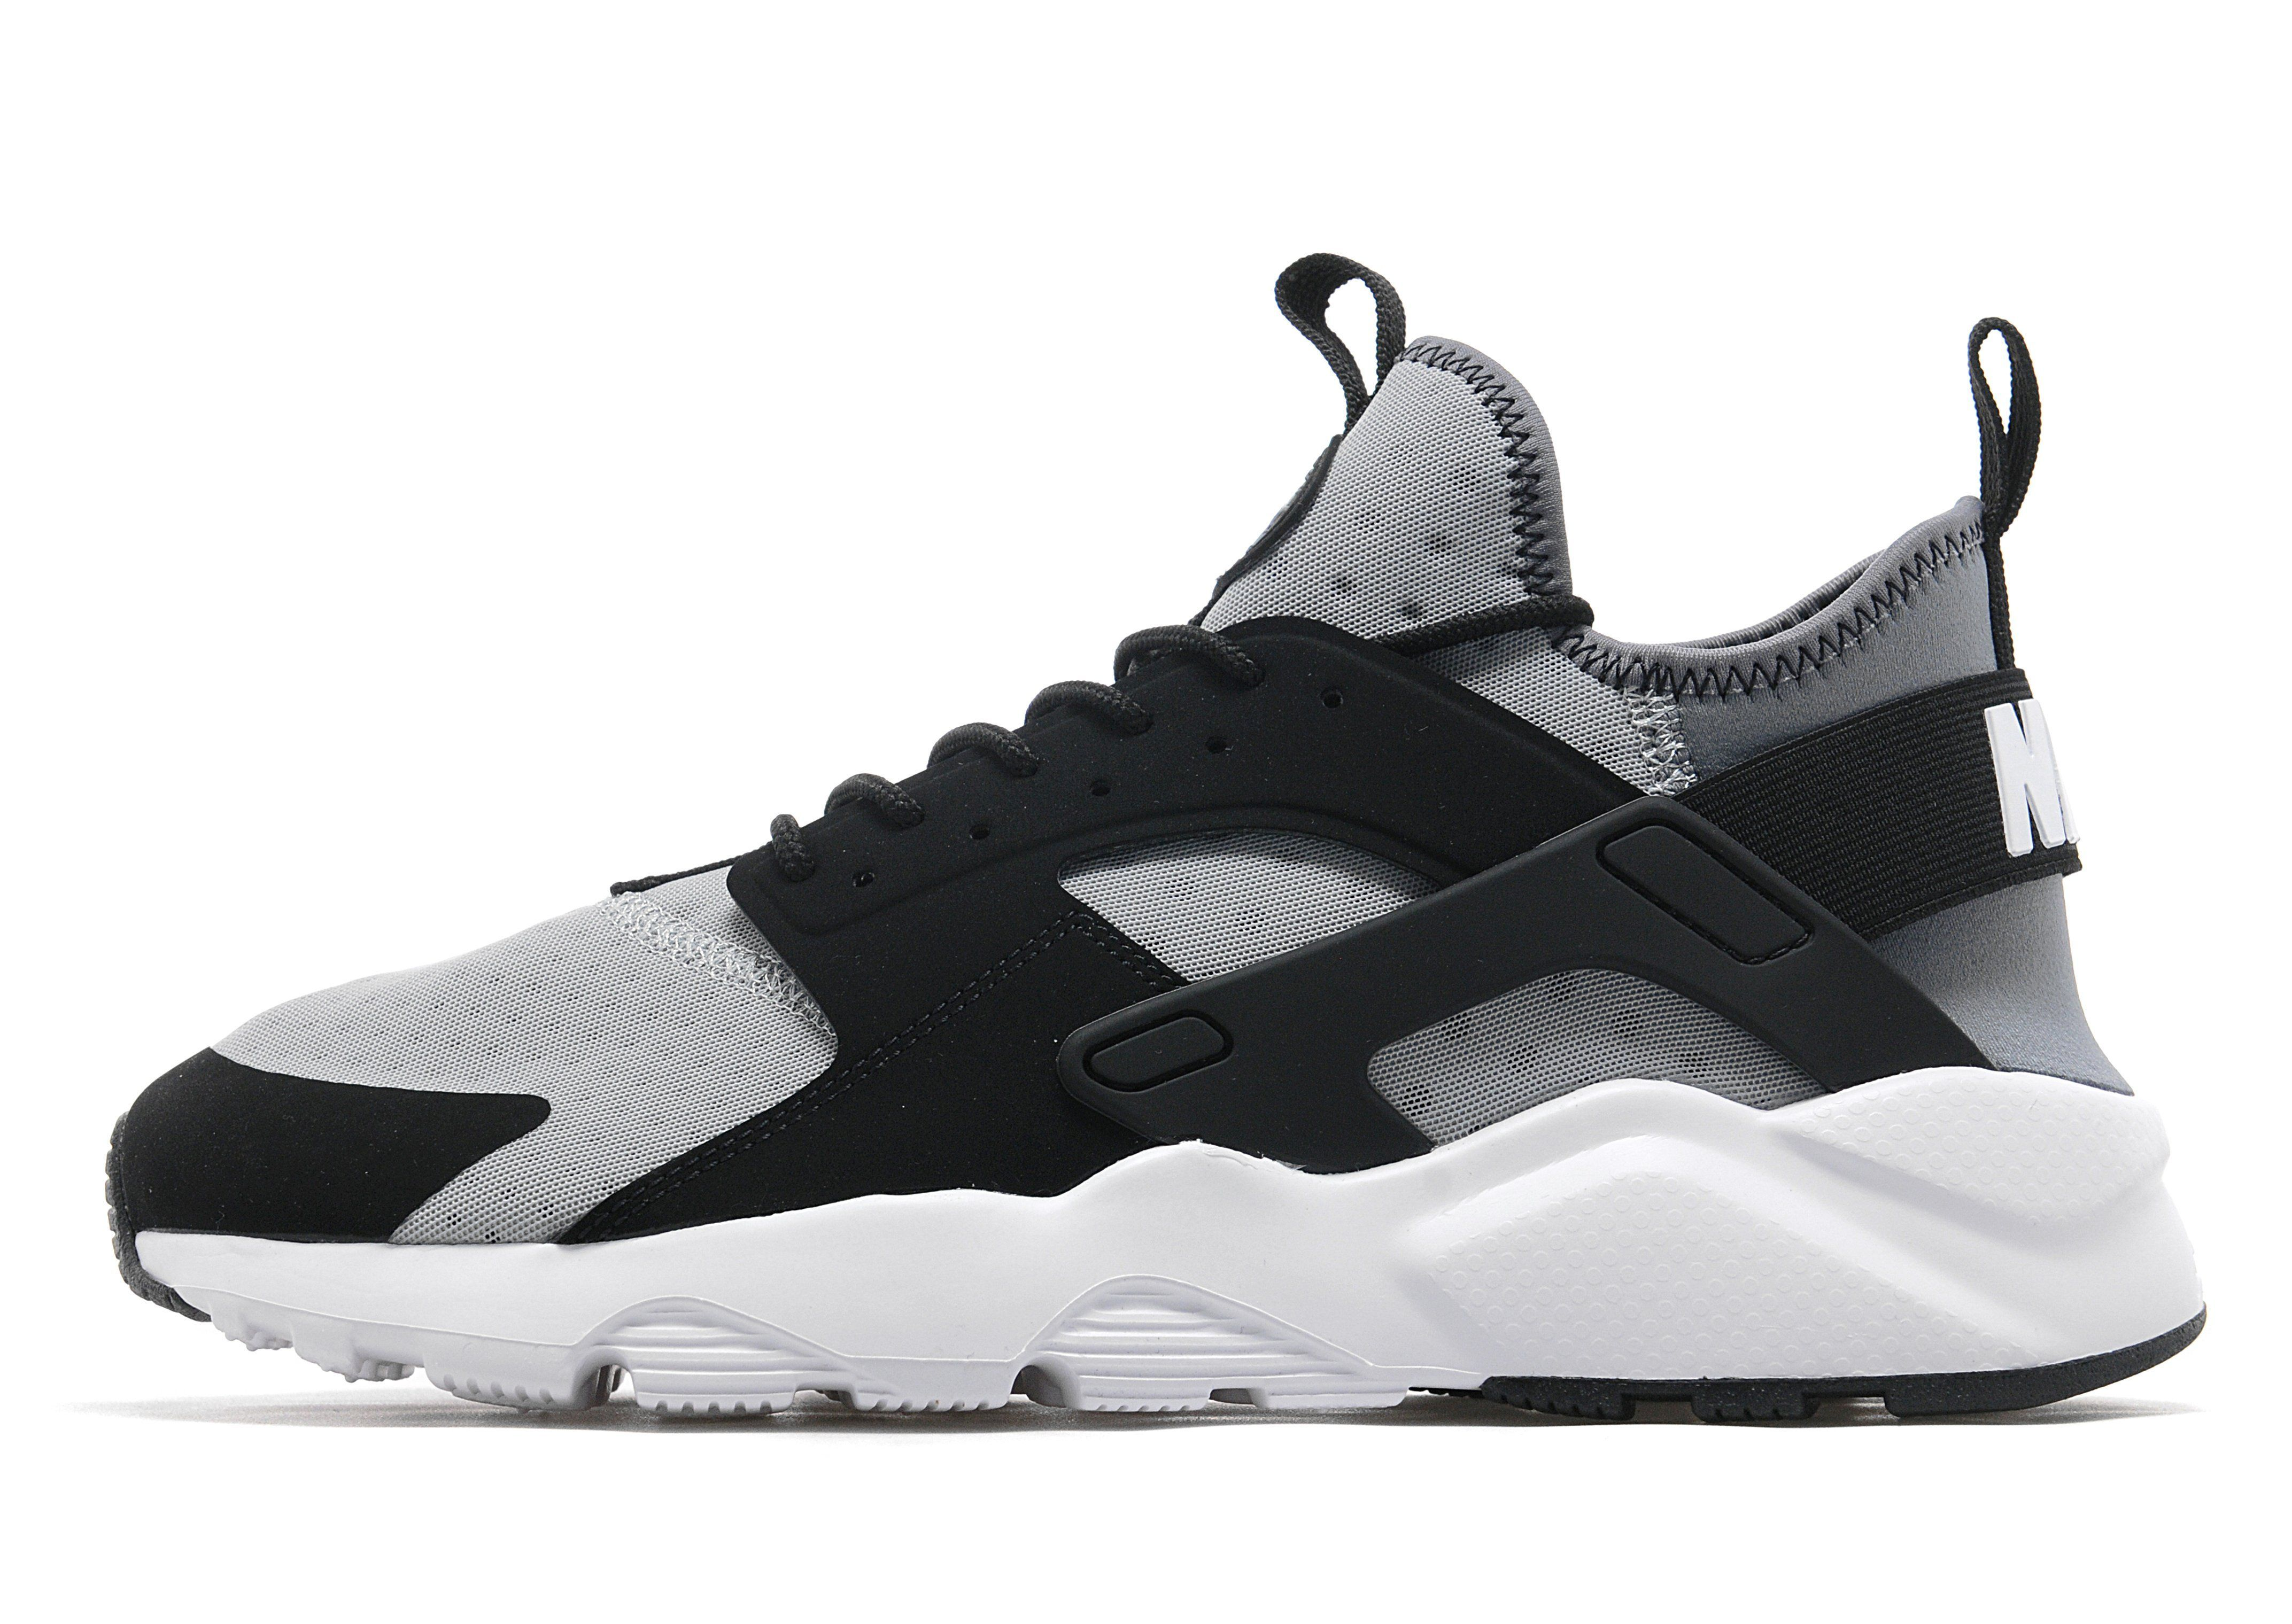 check out 961d4 afcb4 ... new zealand nike huarache ultra breathe shop online for nike huarache  ultra breathe with jd sports